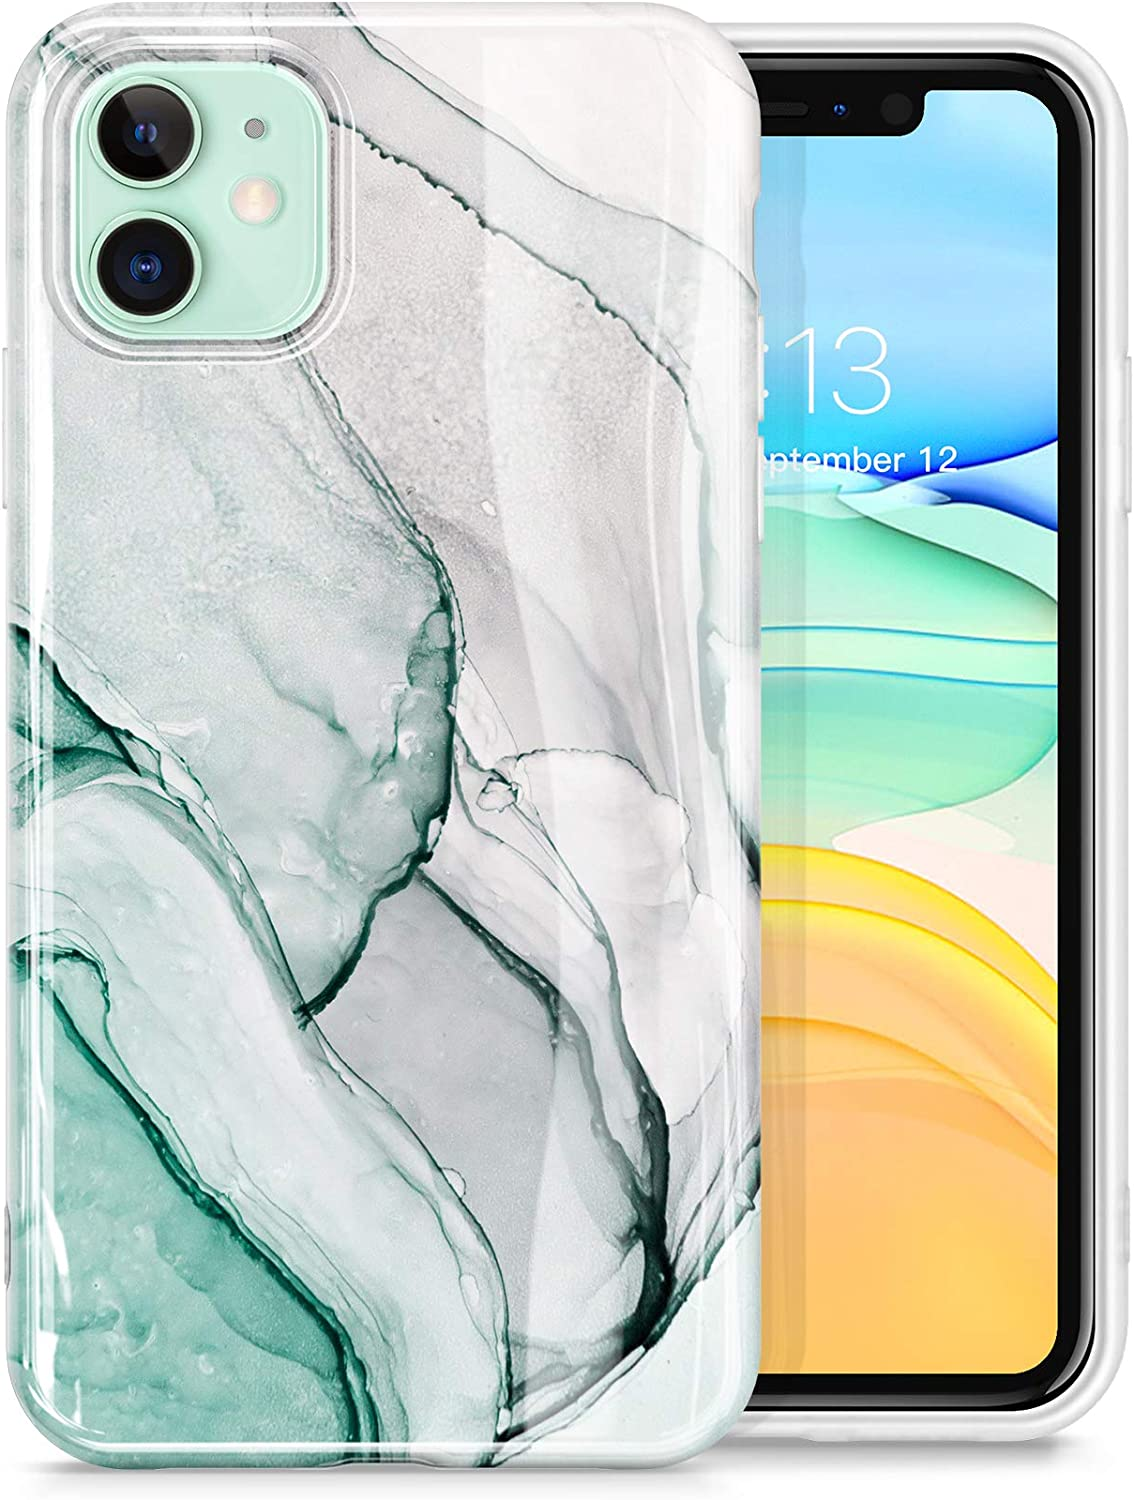 GVIEWIN Marble Compatible with iPhone 11 Case, Ultra Slim Thin Glossy Soft TPU Rubber Gel Phone Case Cover Compatible with iPhone 11 6.1 Inch 2019 (Agaria/Cyan)